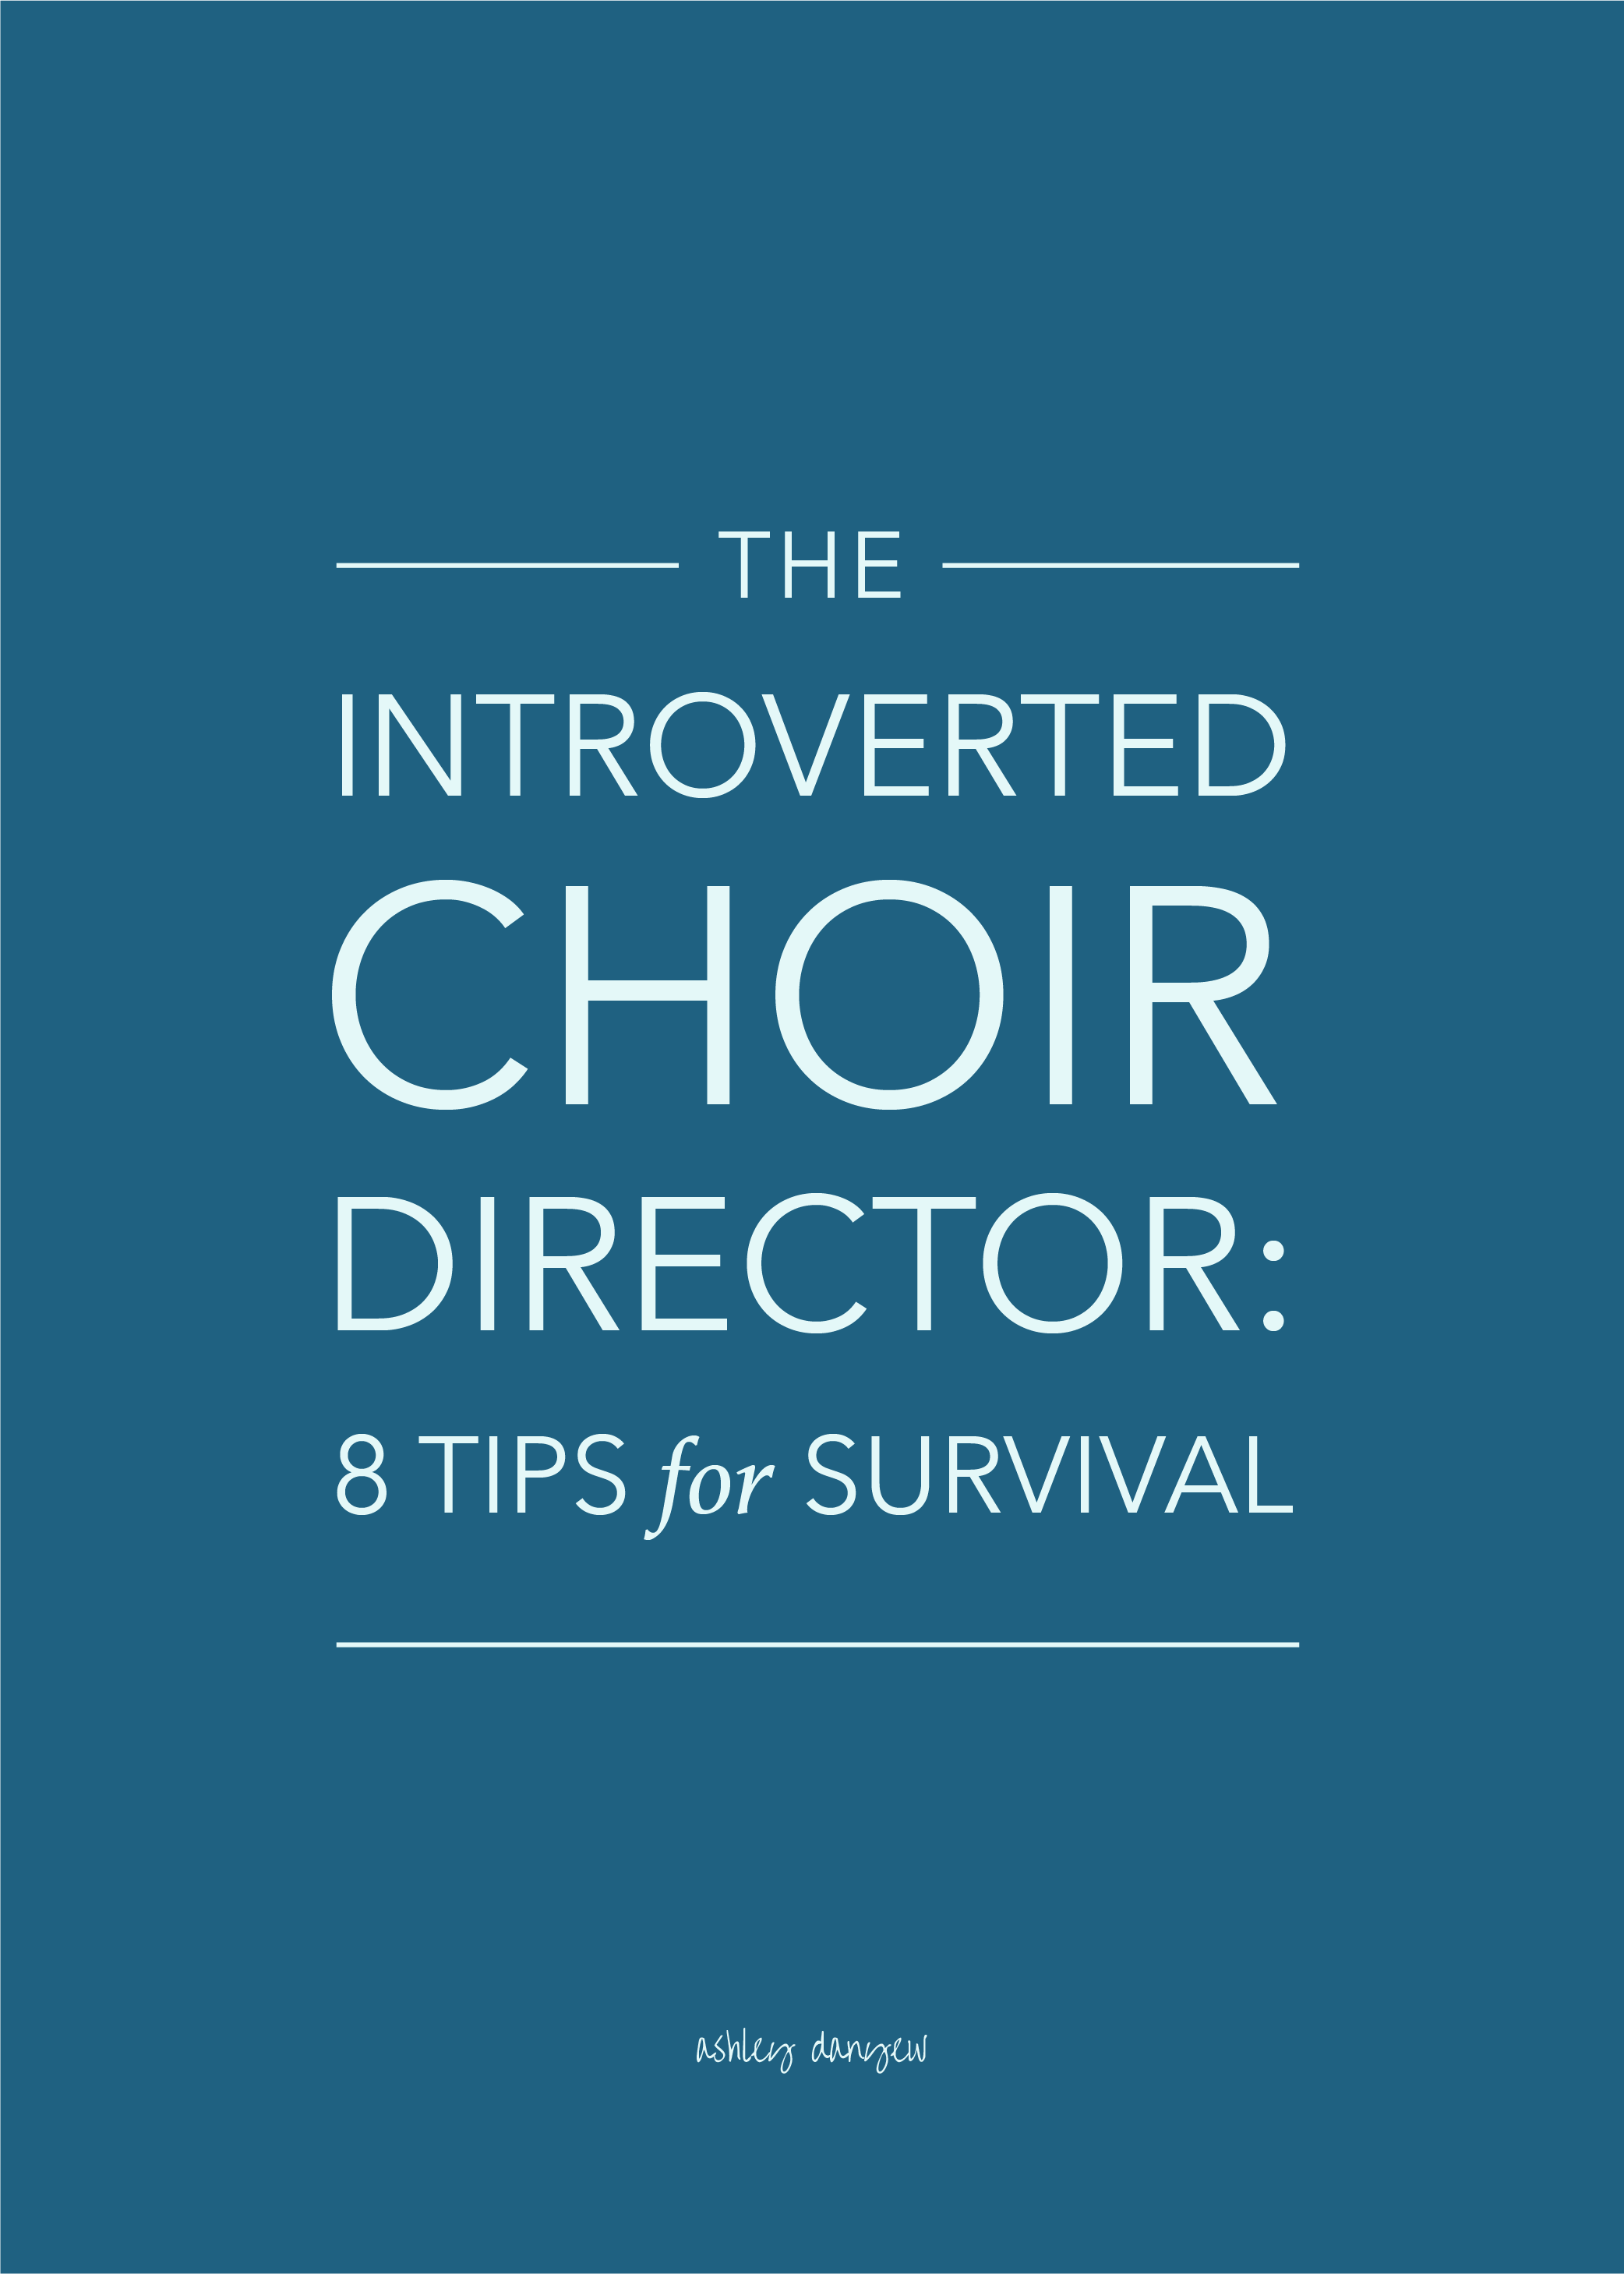 The Introverted Choir Director - 8 Tips for Survival-32.png